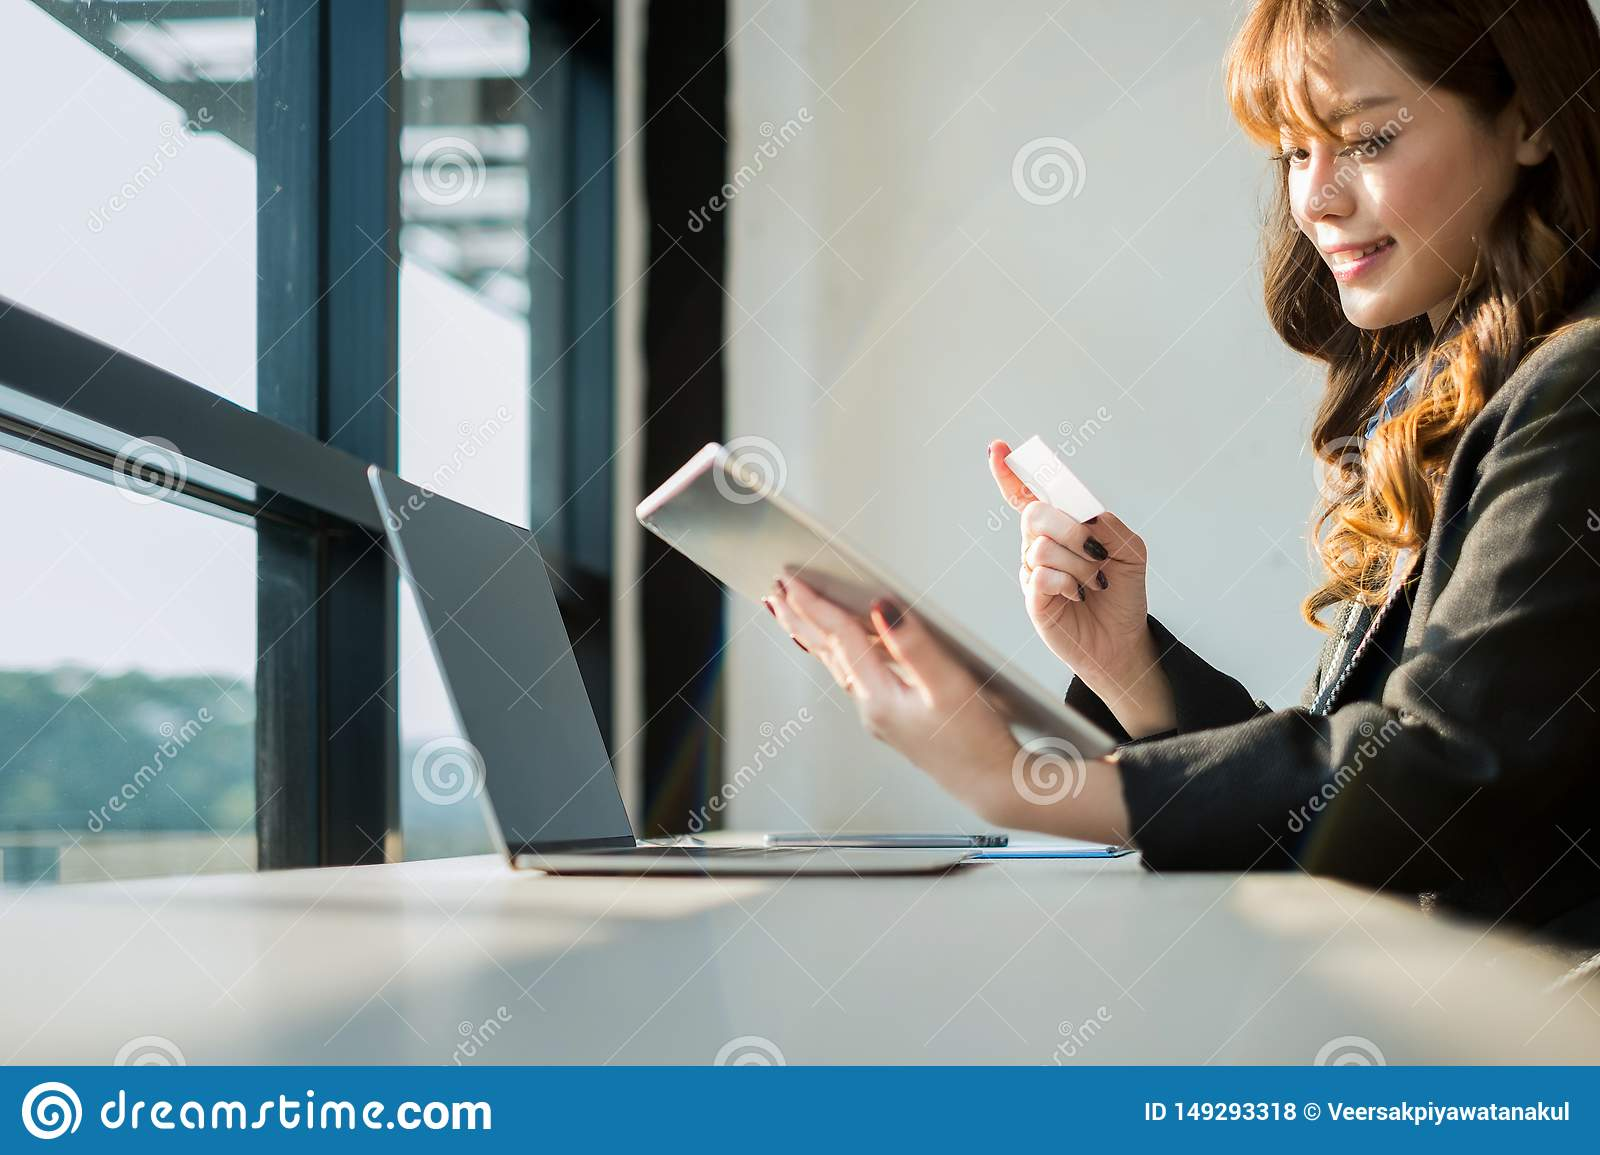 Woman Holding Credit Card And Using Laptop And Smartphone Shopping Website Online, Shopping ...